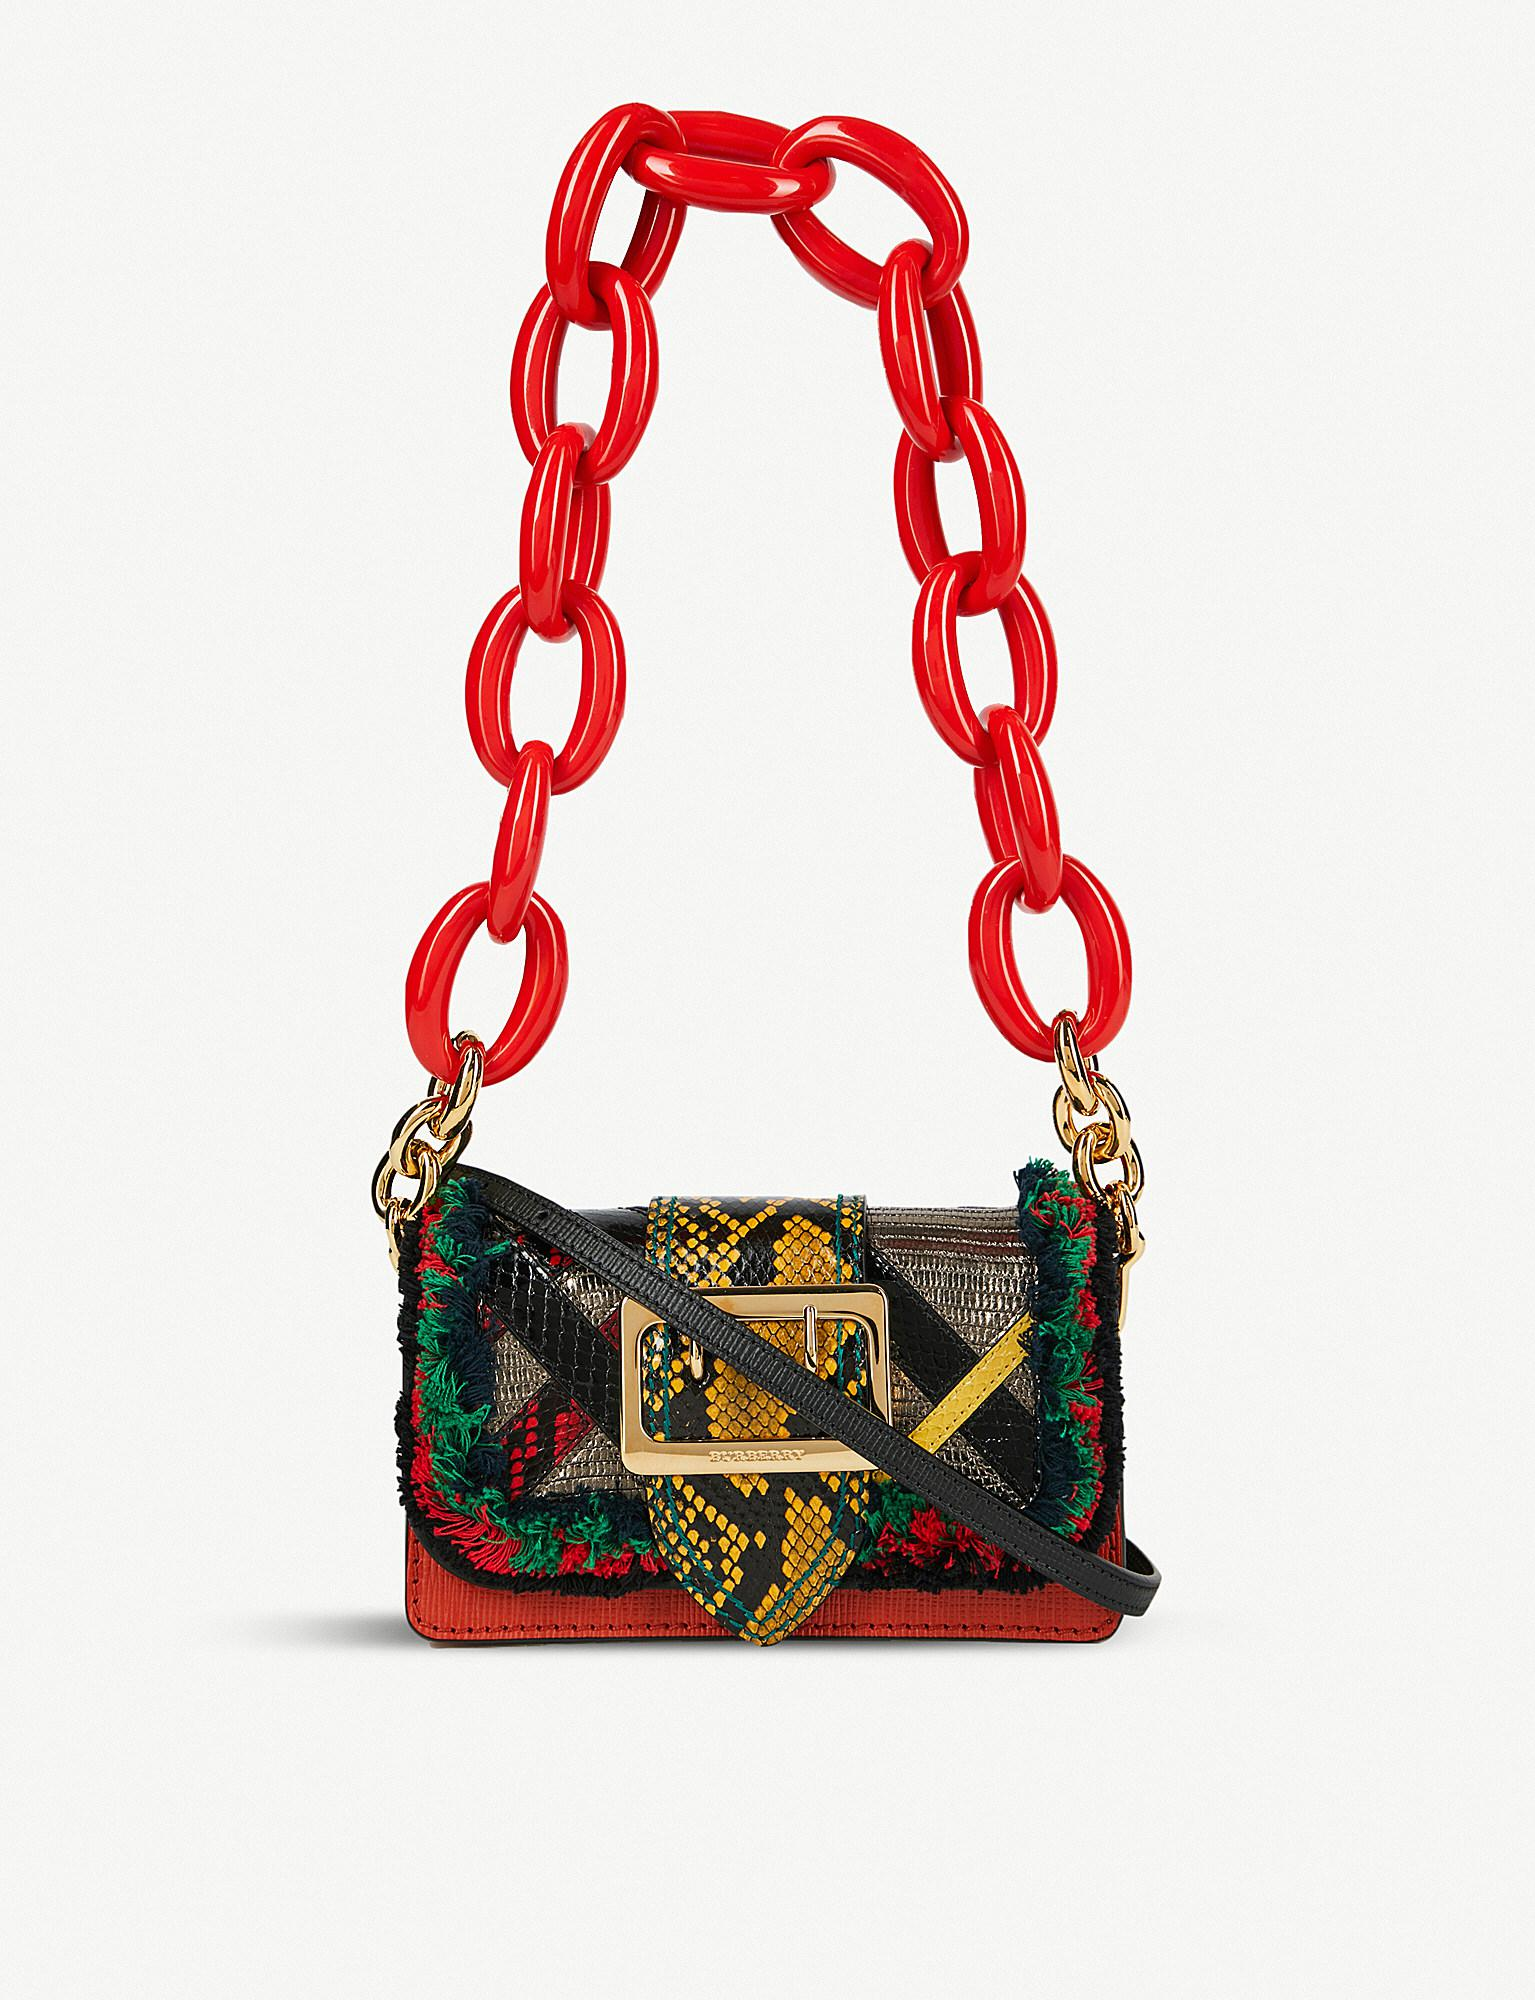 Lyst - Burberry Buckle Patchwork Leather Shoulder Bag in Red 4c40a2d484f34